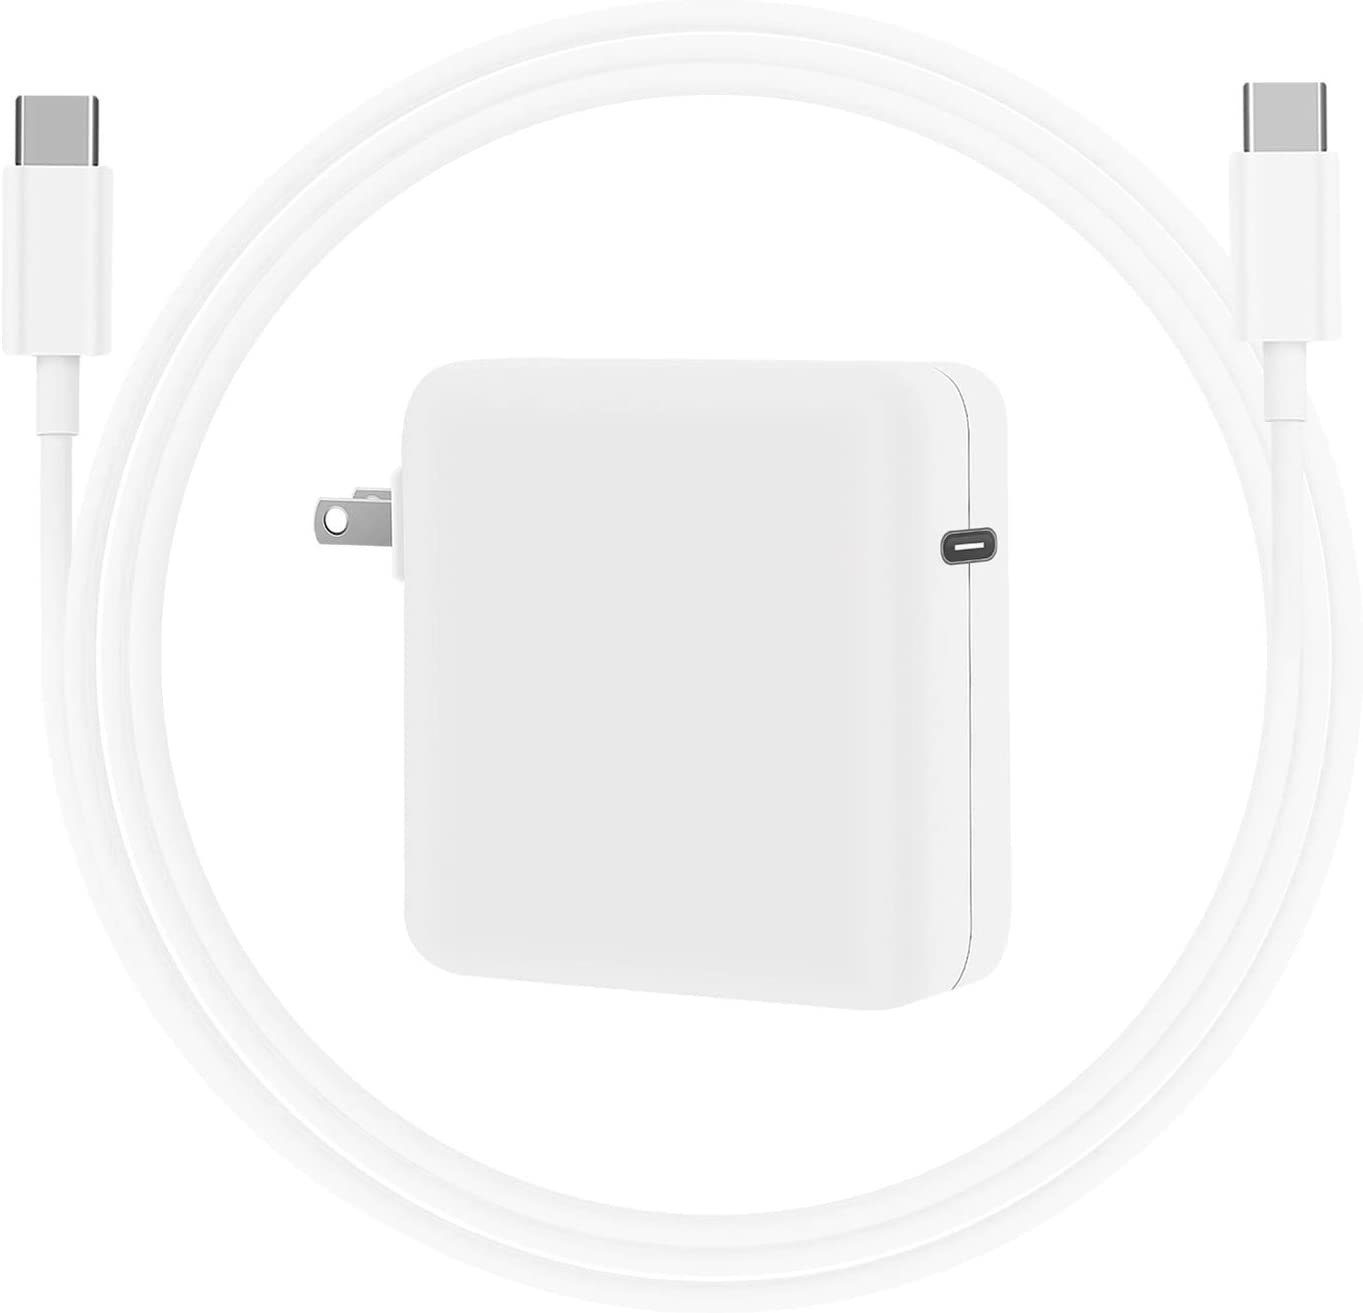 Replacement Mac Book Pro Charger, 61W USB C Charger Power Adapter for MacBook Air 13/12 inch 2020, 2019, 2018, iPad Pro 12.9 11